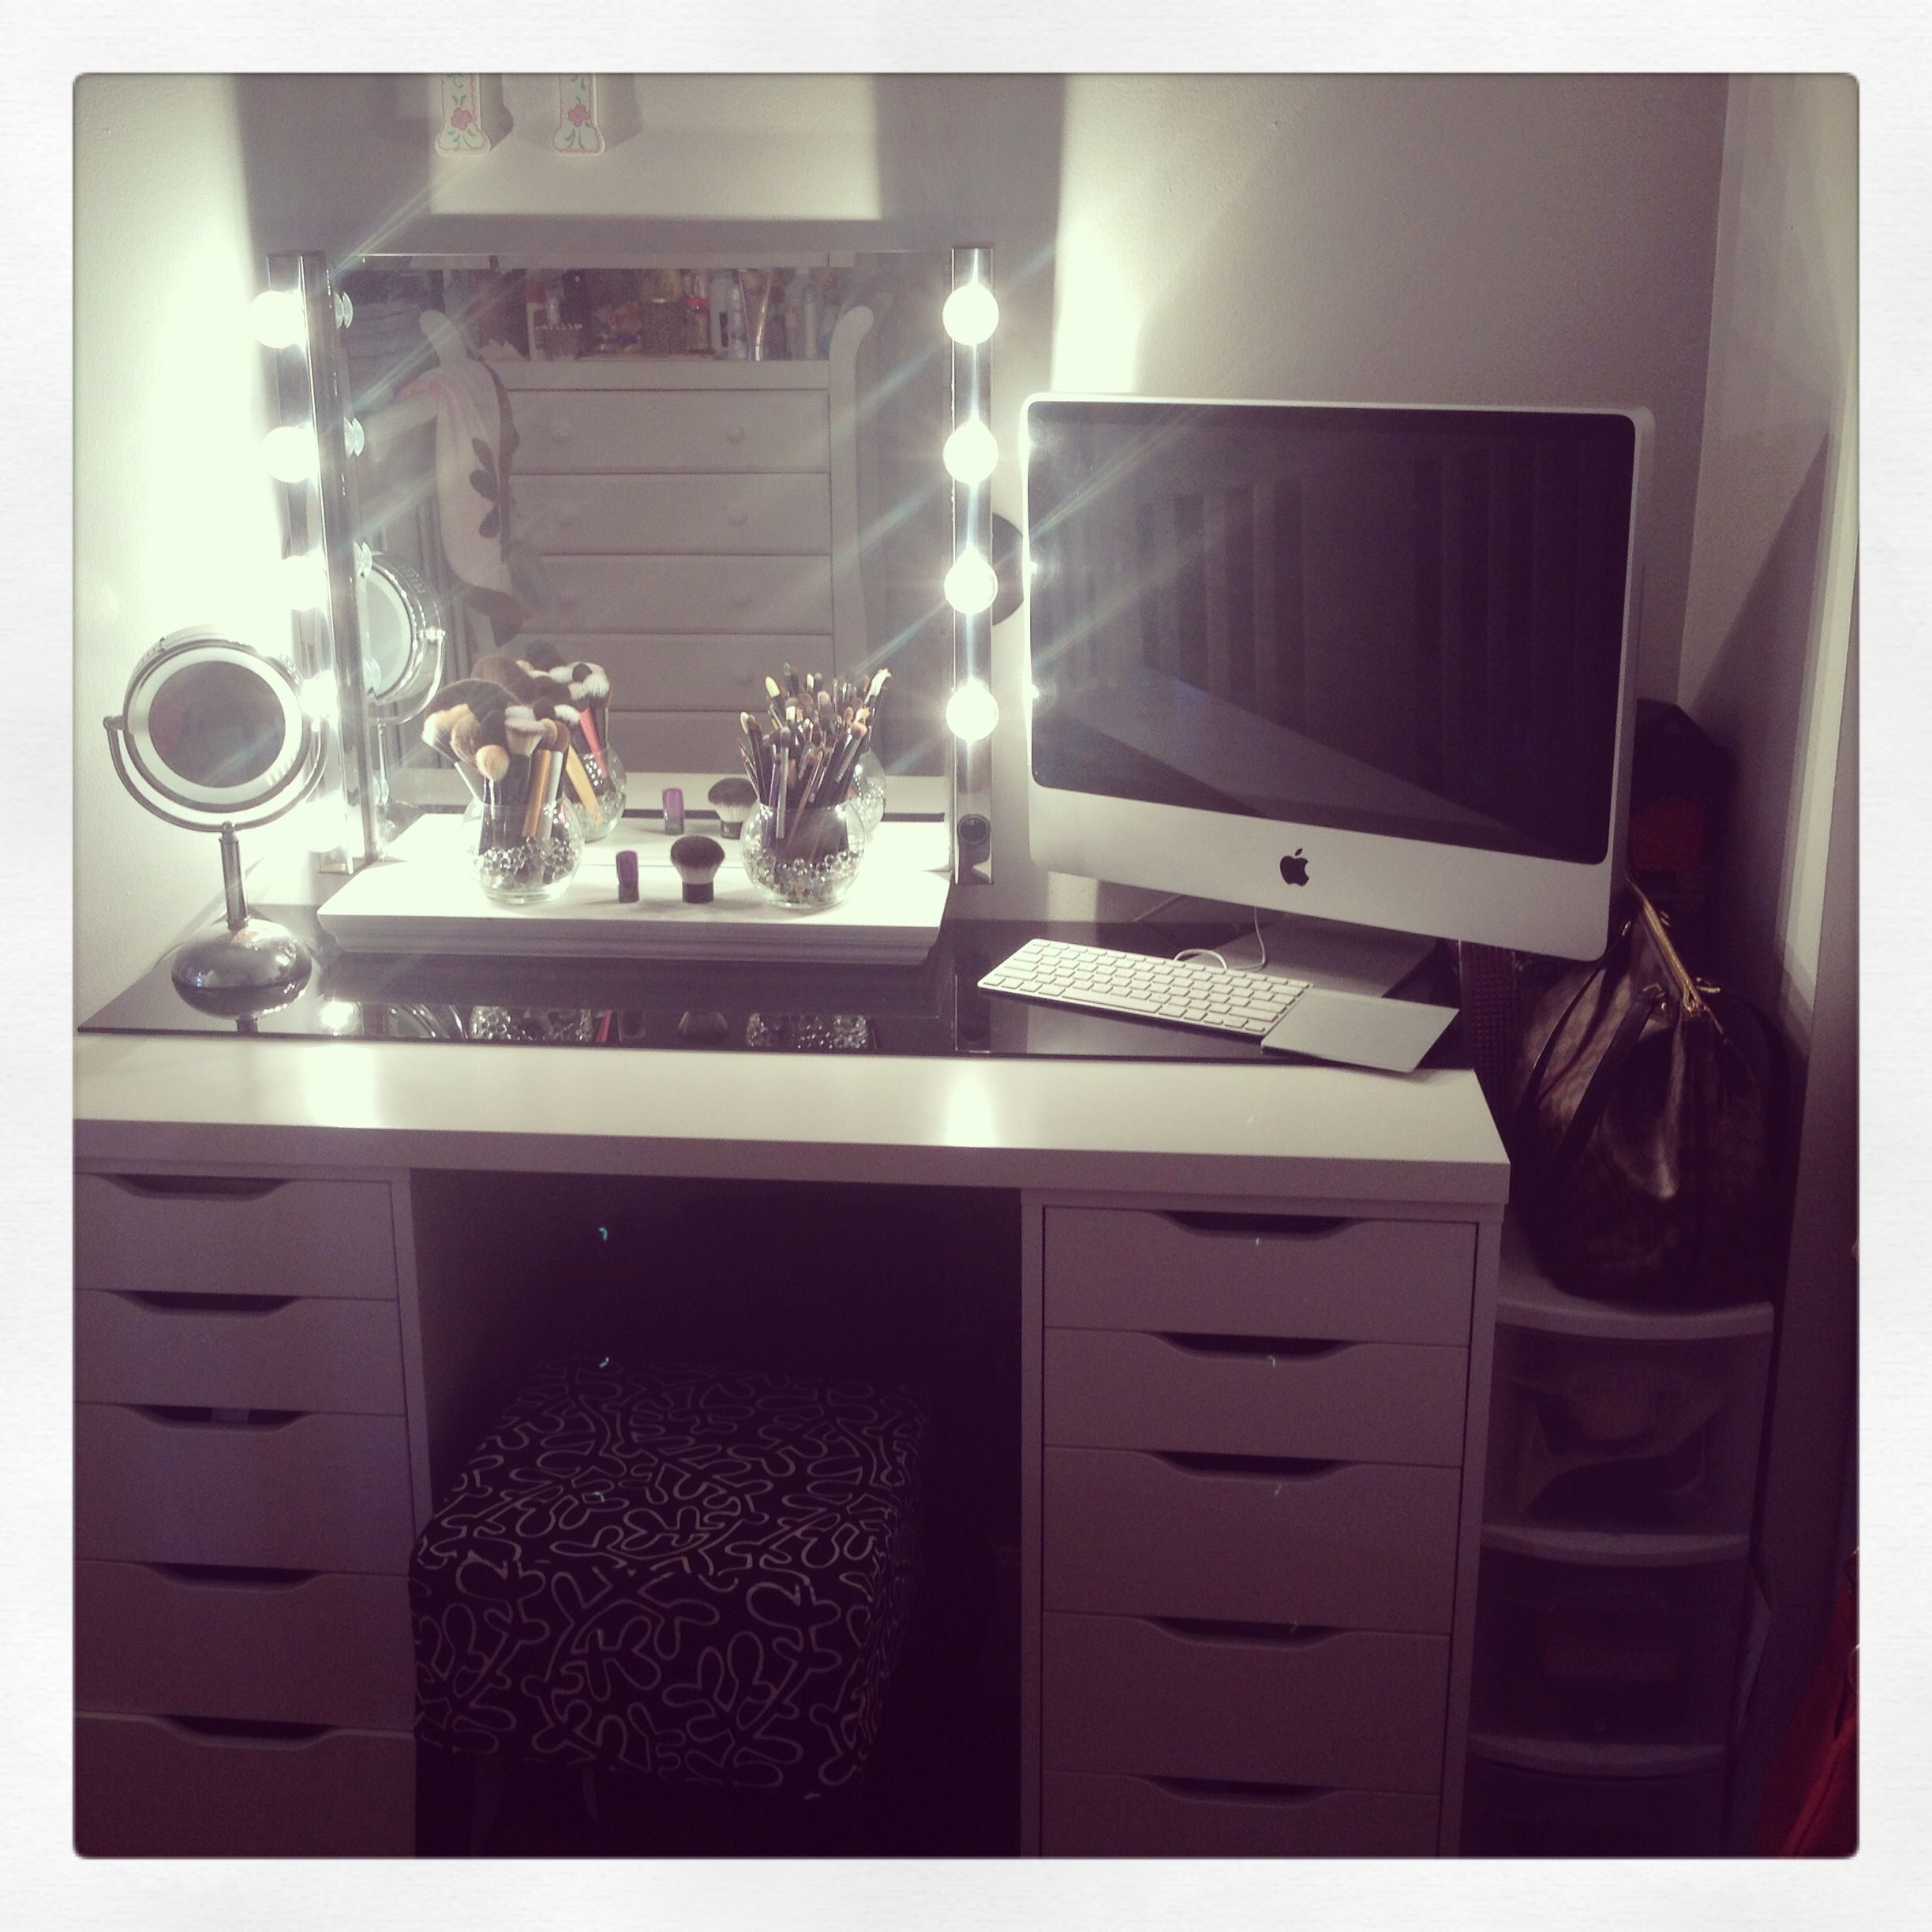 Diy vanity with mirror hollywood lights room storage pinterest diy vanity with mirror hollywood lights mozeypictures Image collections